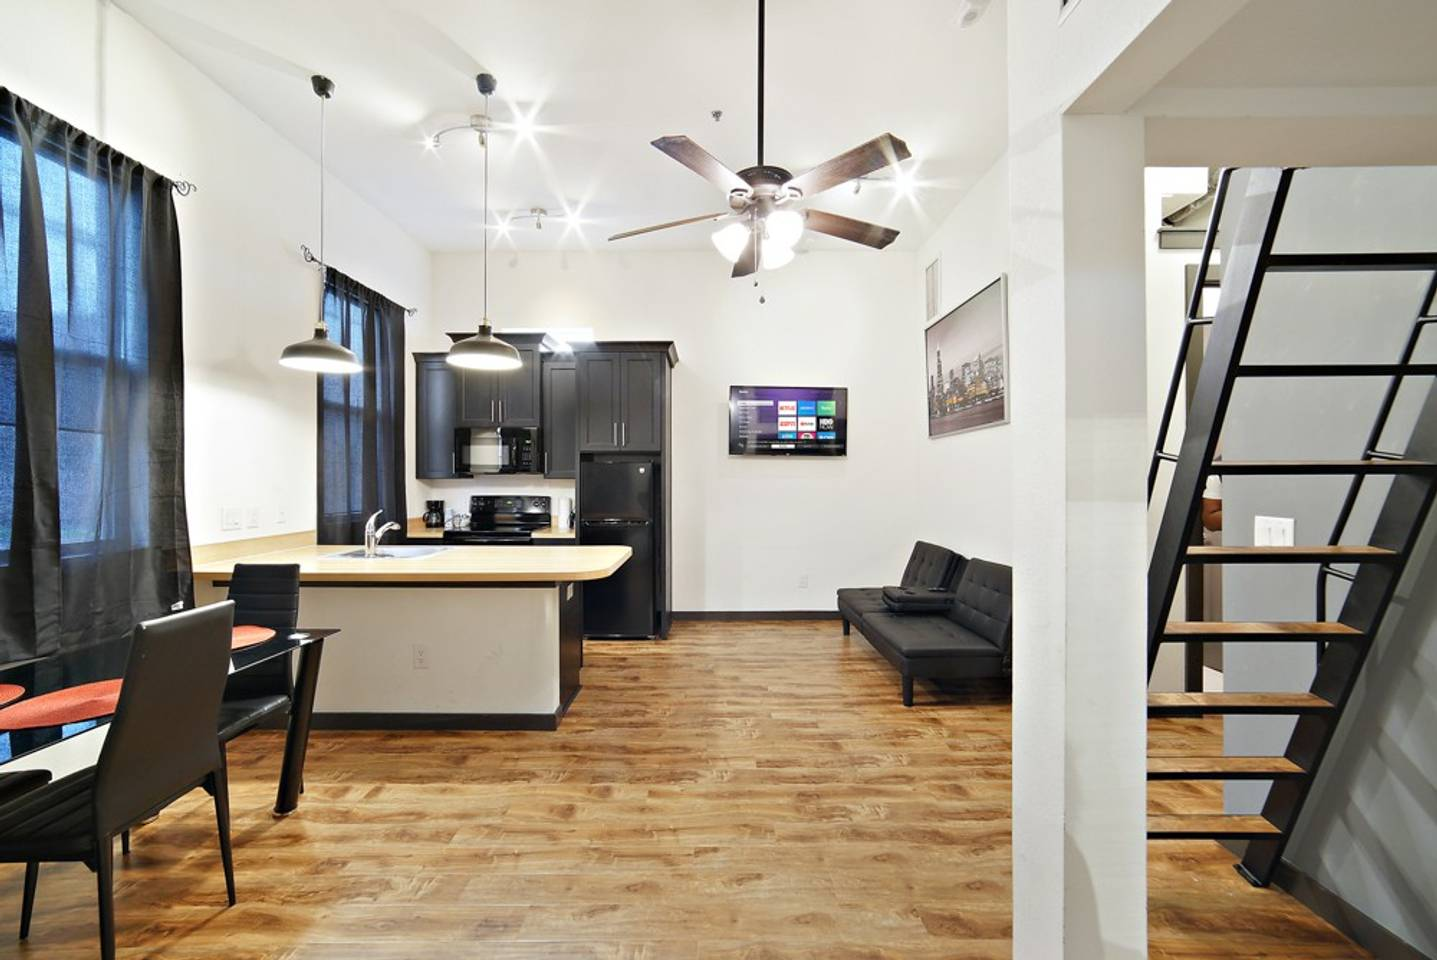 Loft Style Living in Downtown Tampa #103 photo 19428375